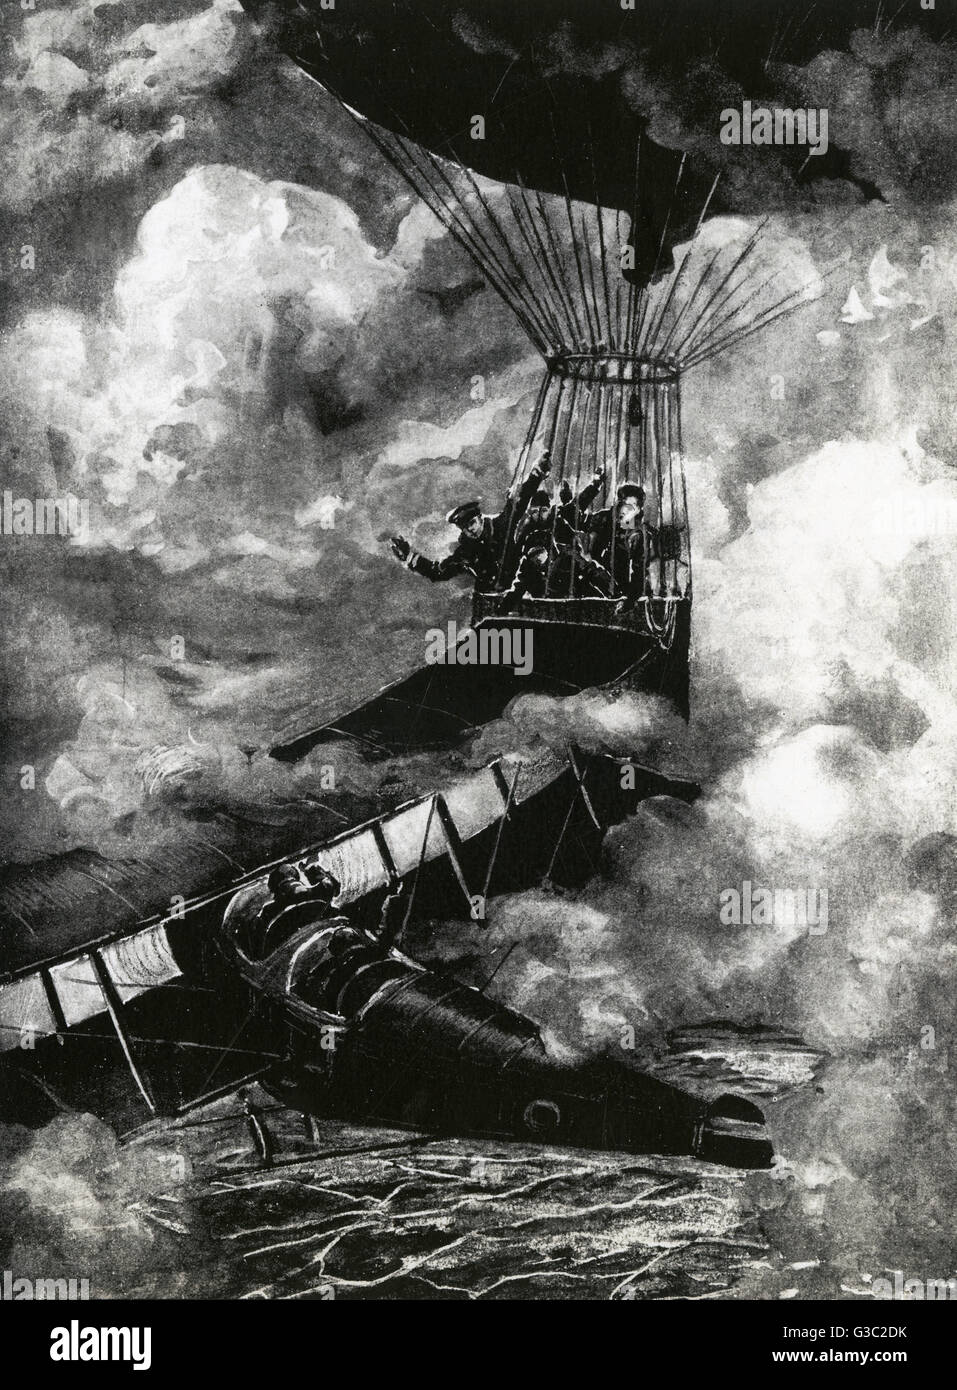 WW1 - A depiction of a close aeronautic encounter between a aeroplane and balloon hidden from each other in the - Stock Image